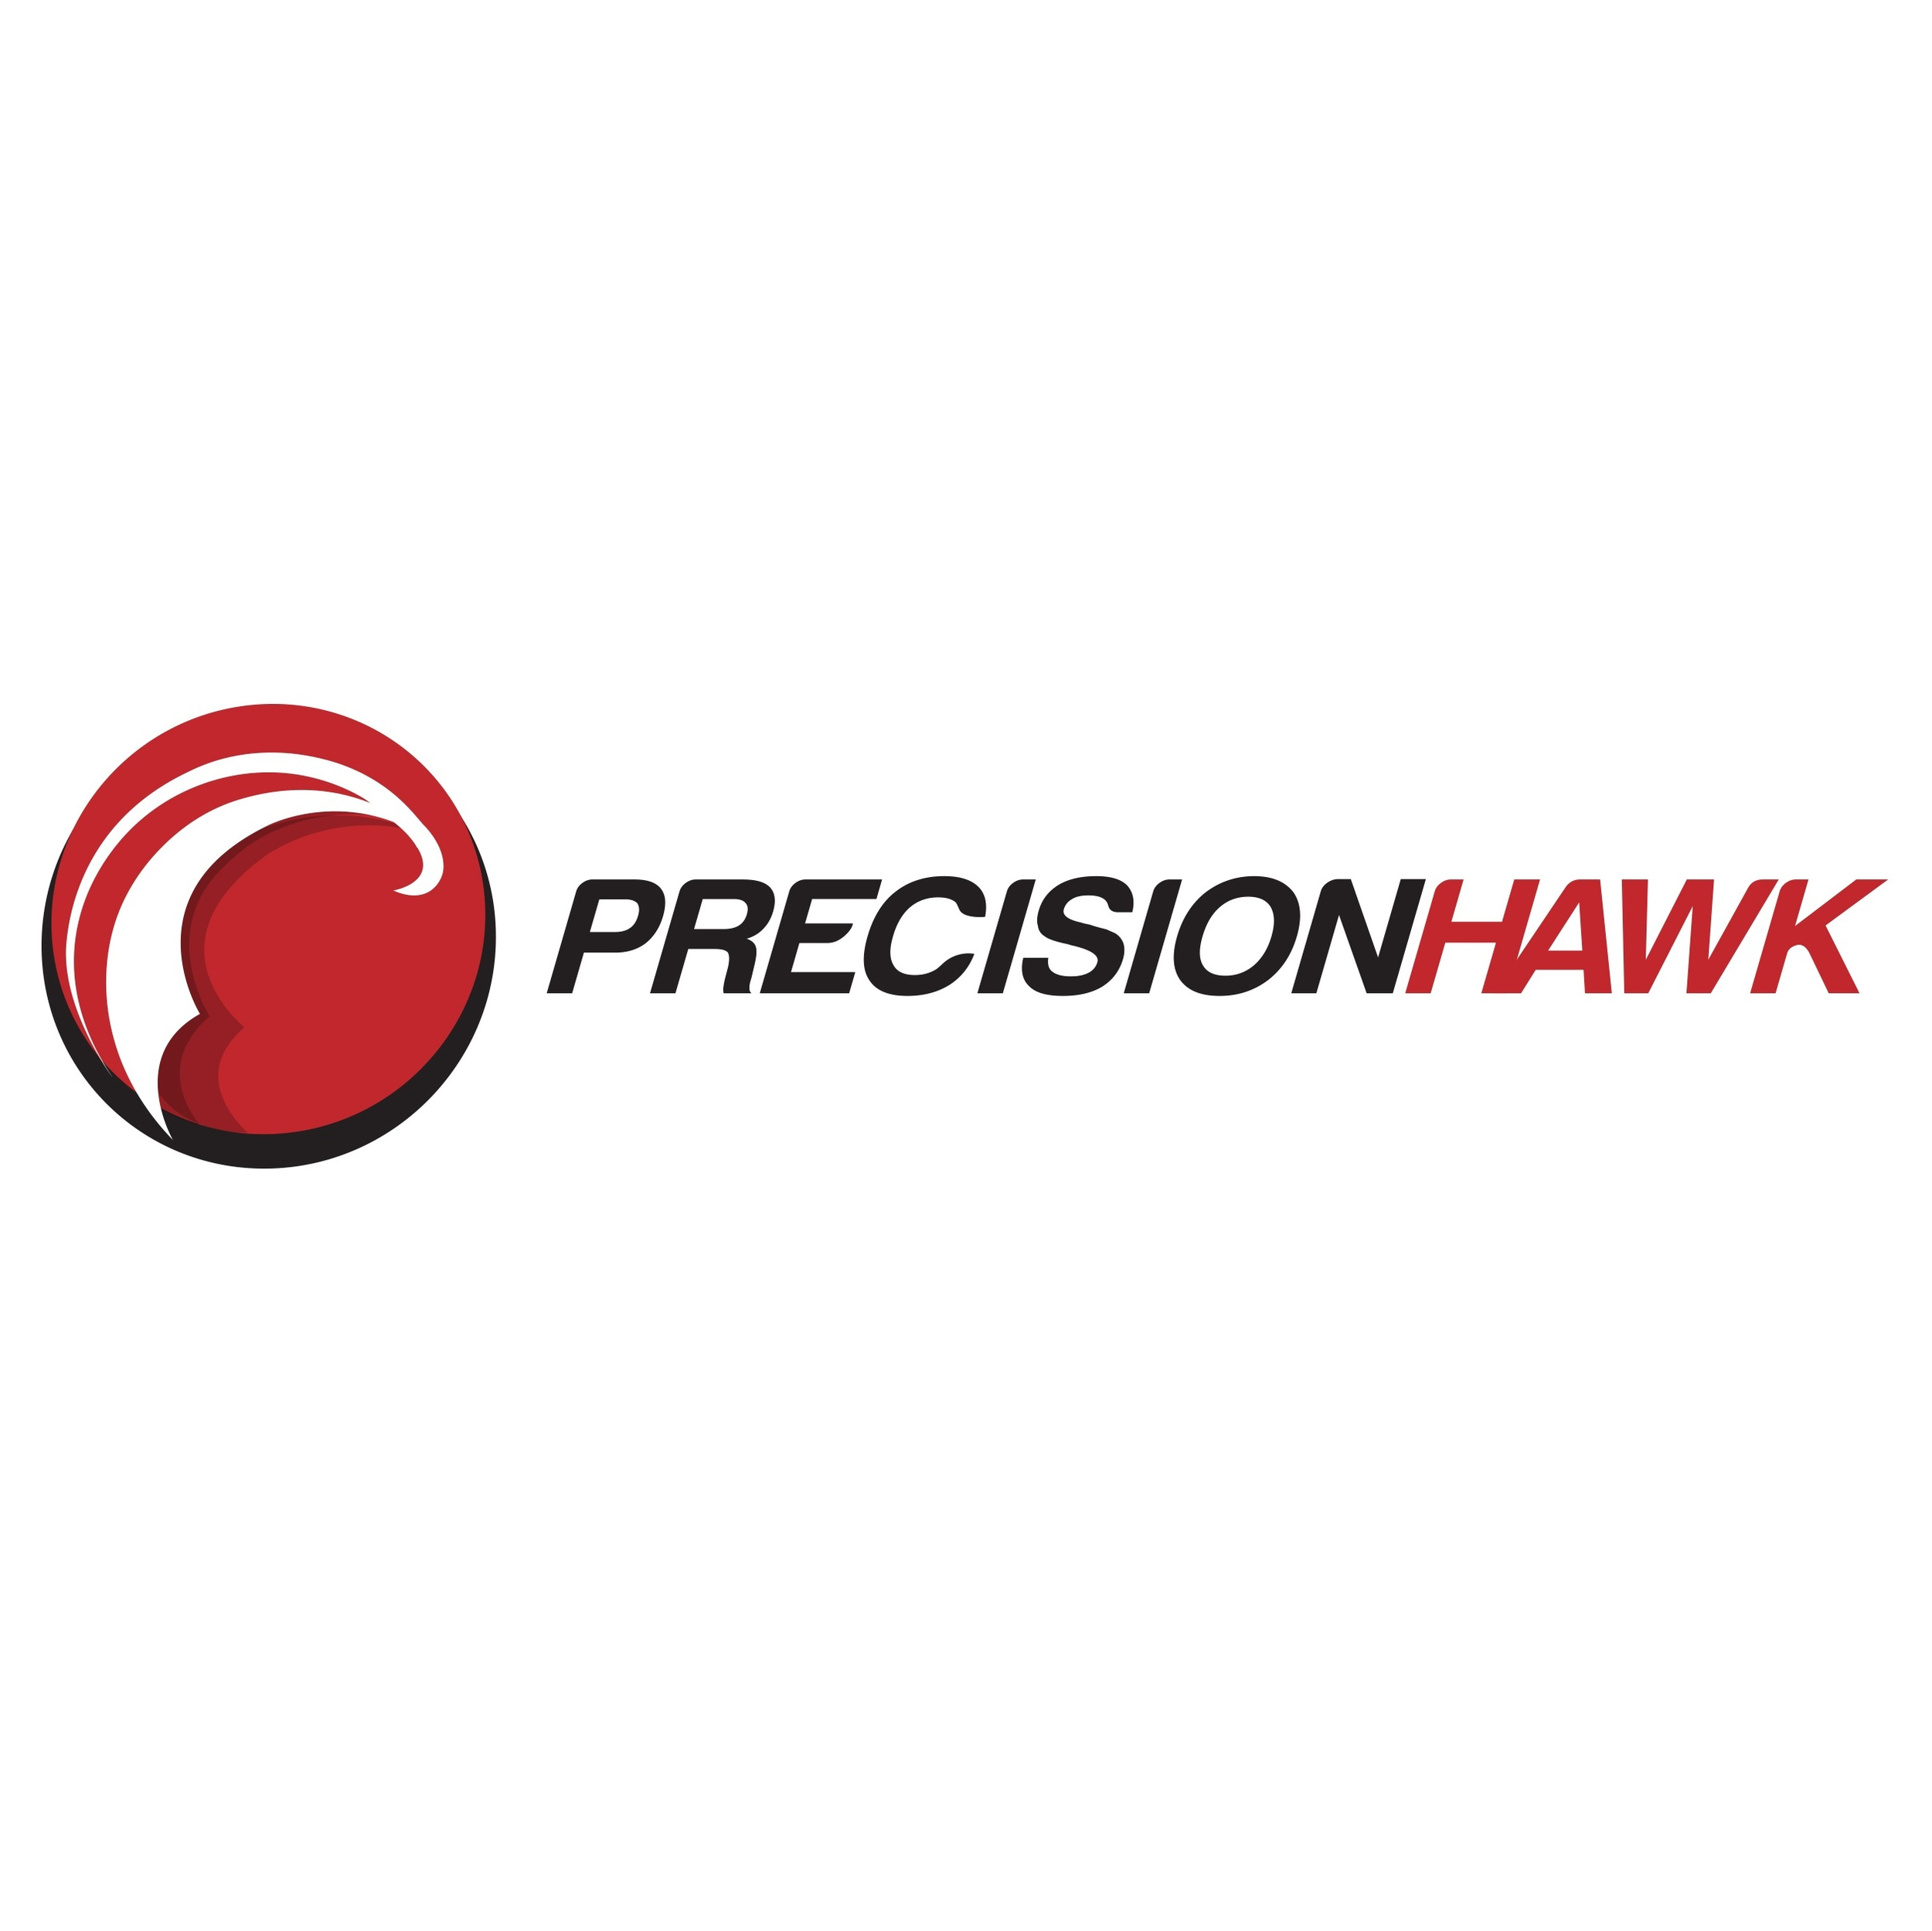 Precision Hawk: Drone hardware and software